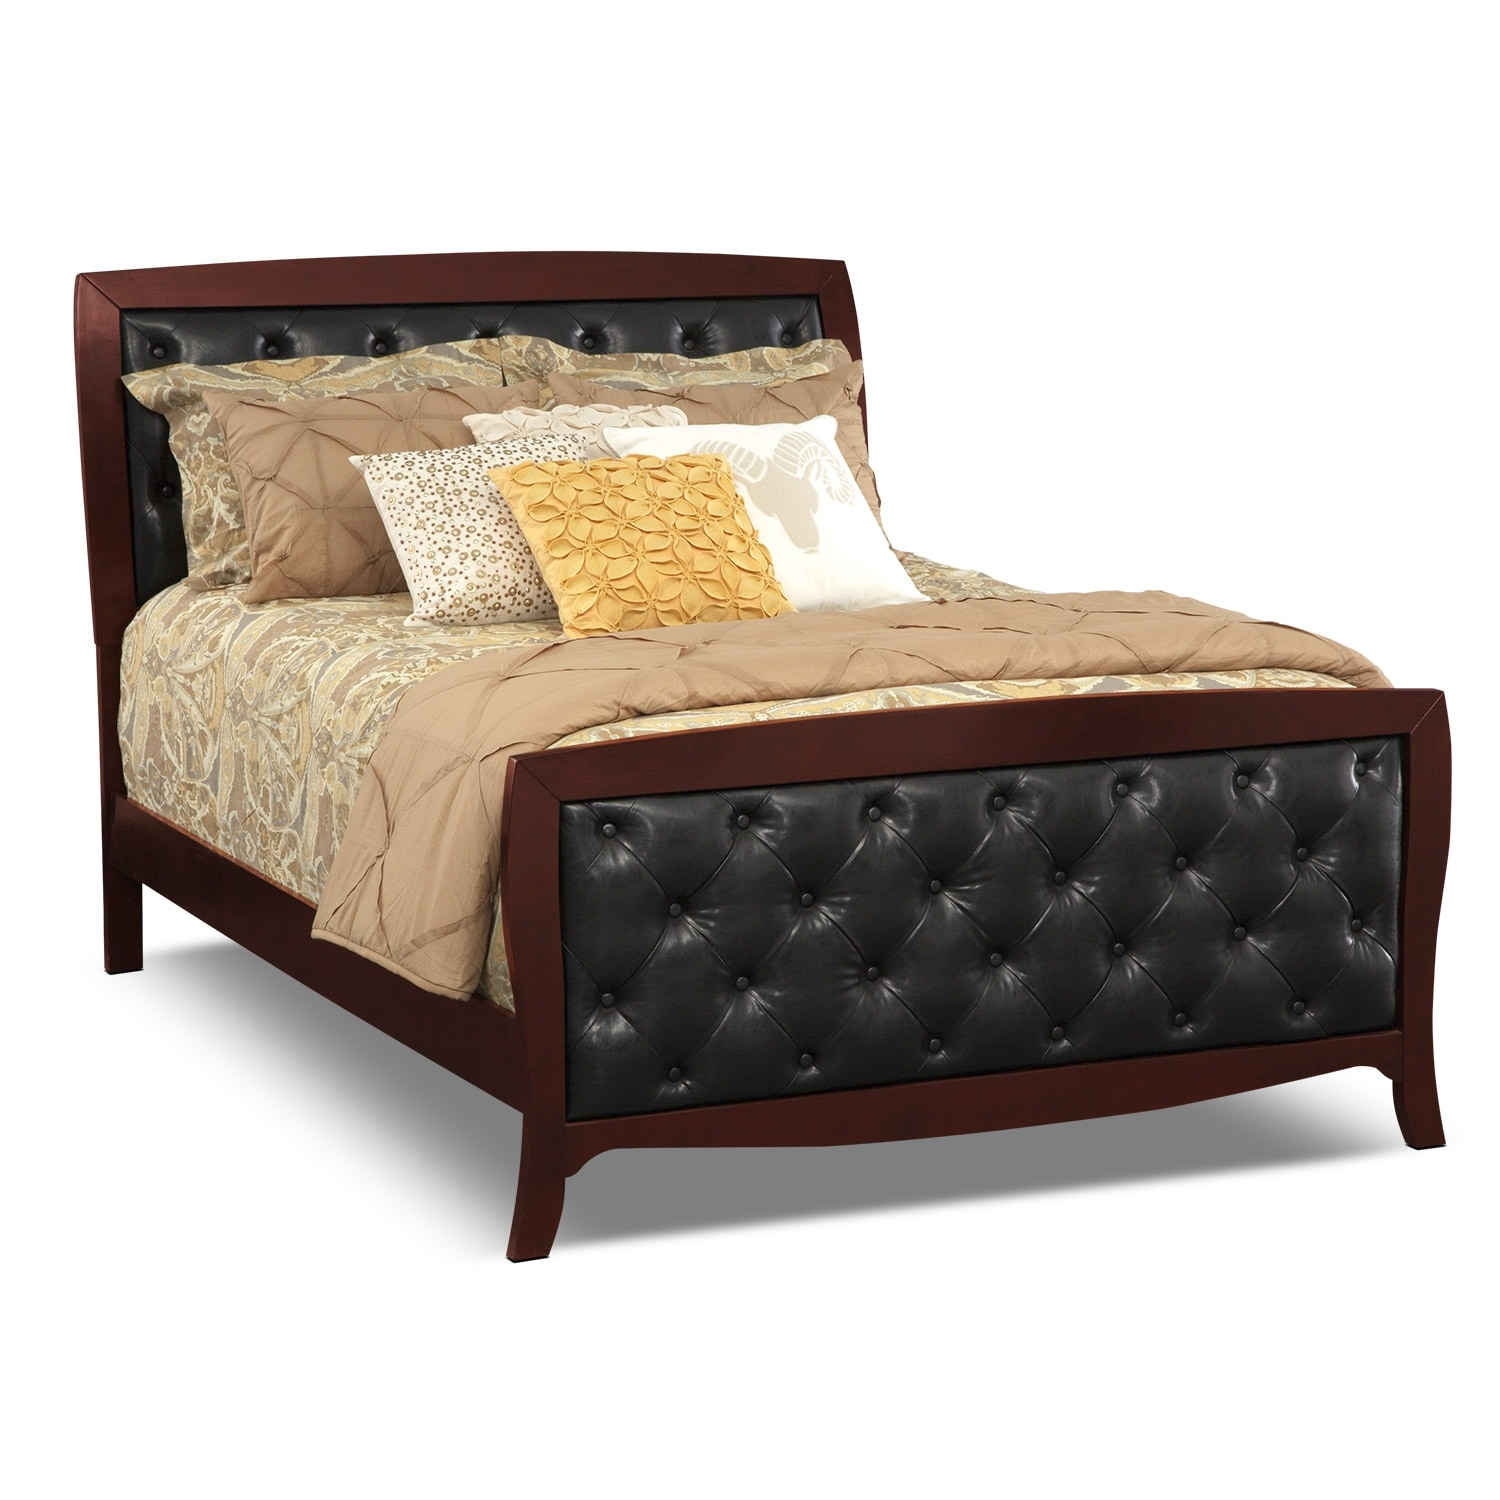 Bedroom Furniture - Jaden Queen Tufted Bed - Merlot